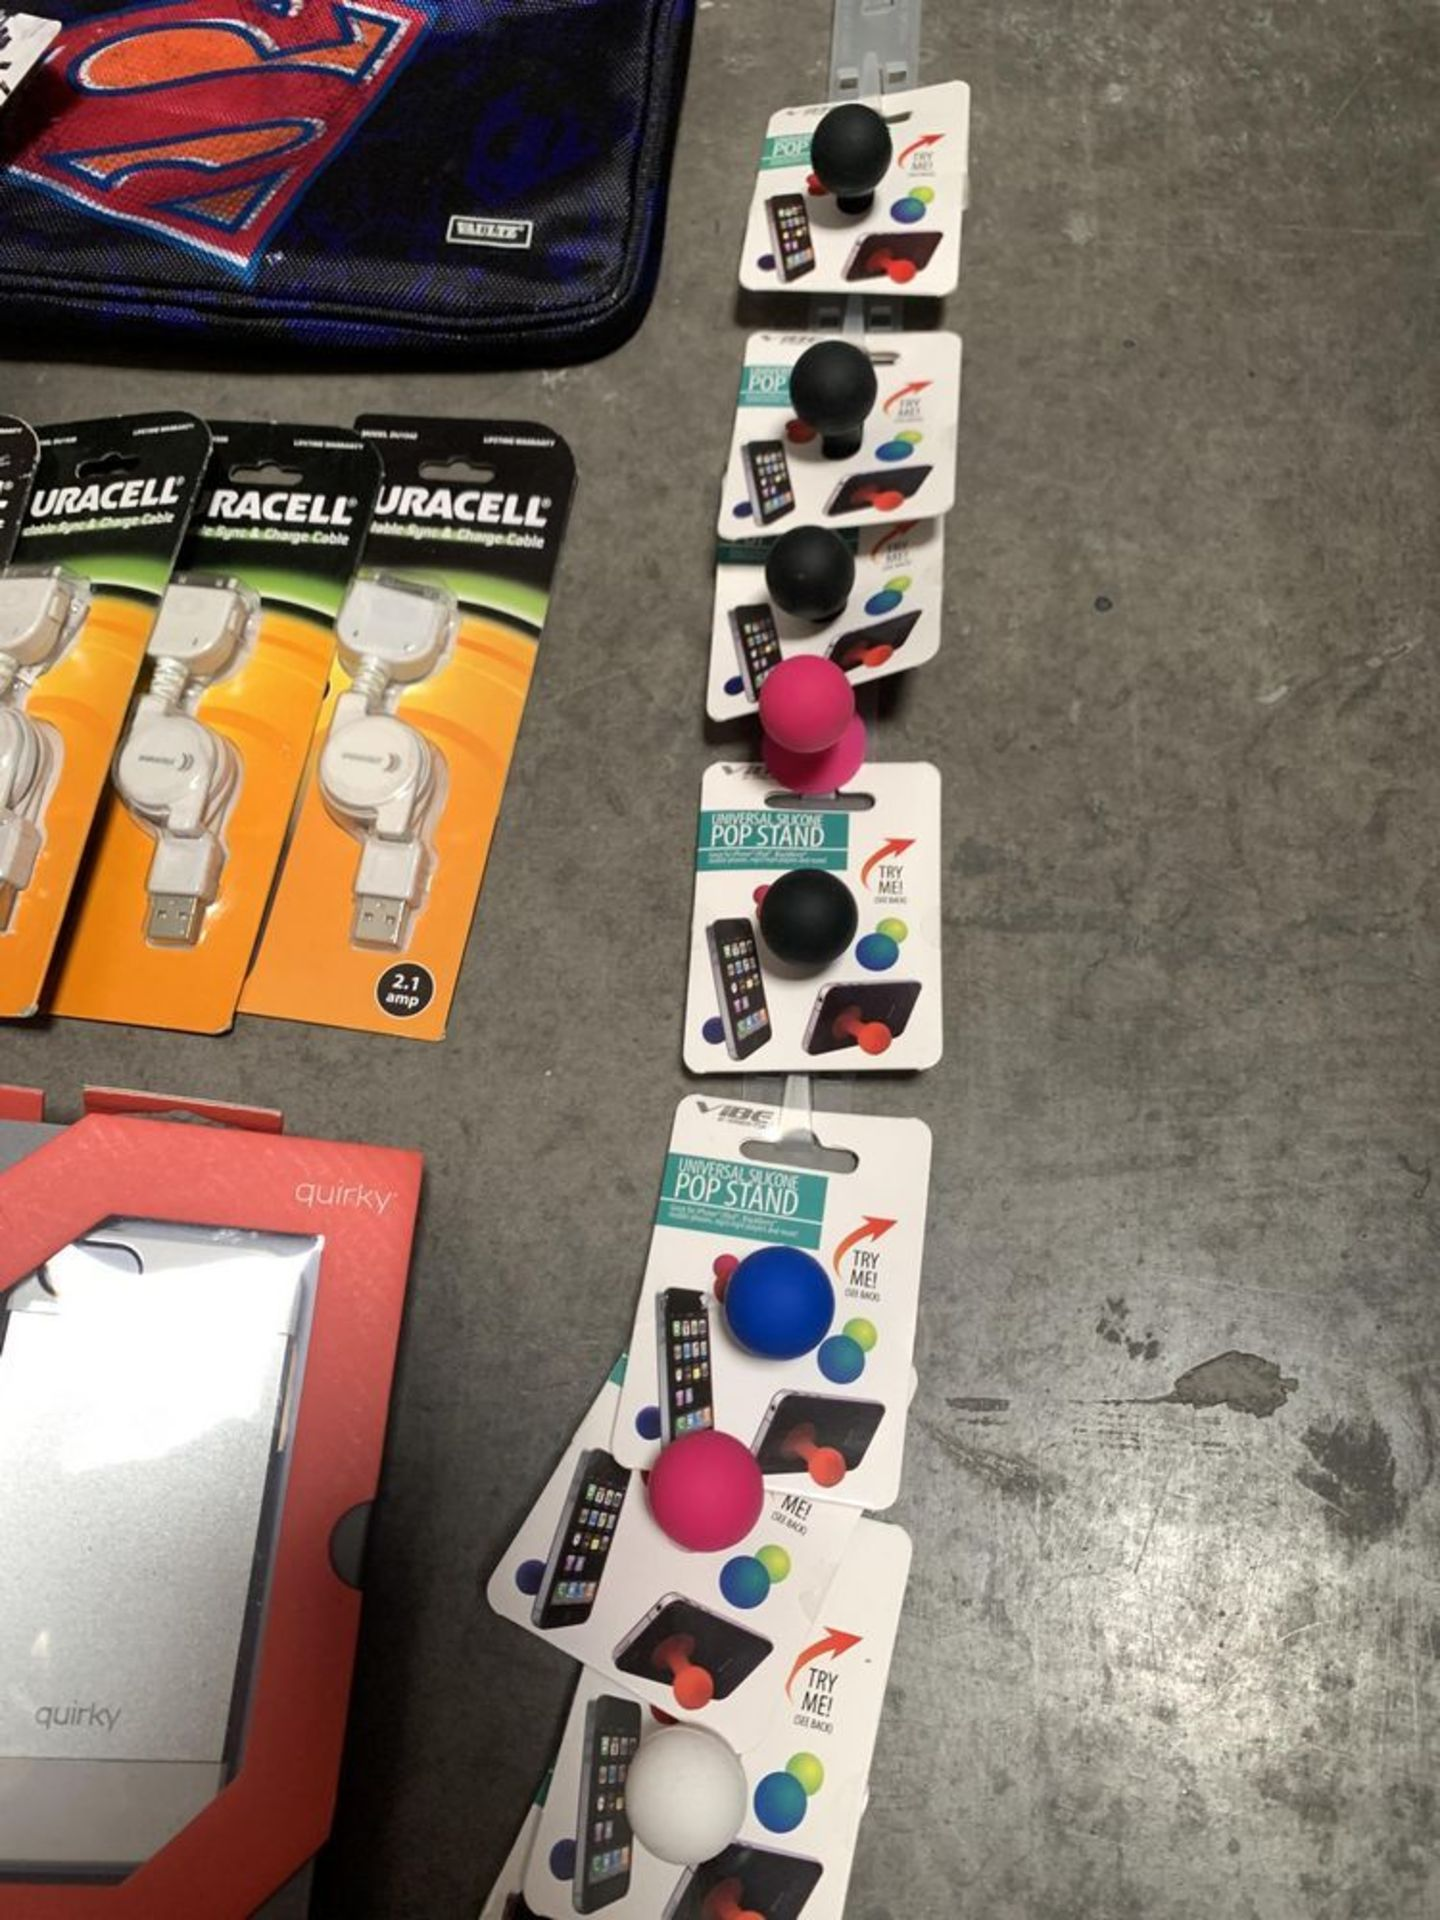 Lot 192 - Lot of 34 Phone Cases and Accessories, Including iPhone cases, iPhone stands, and Chargers